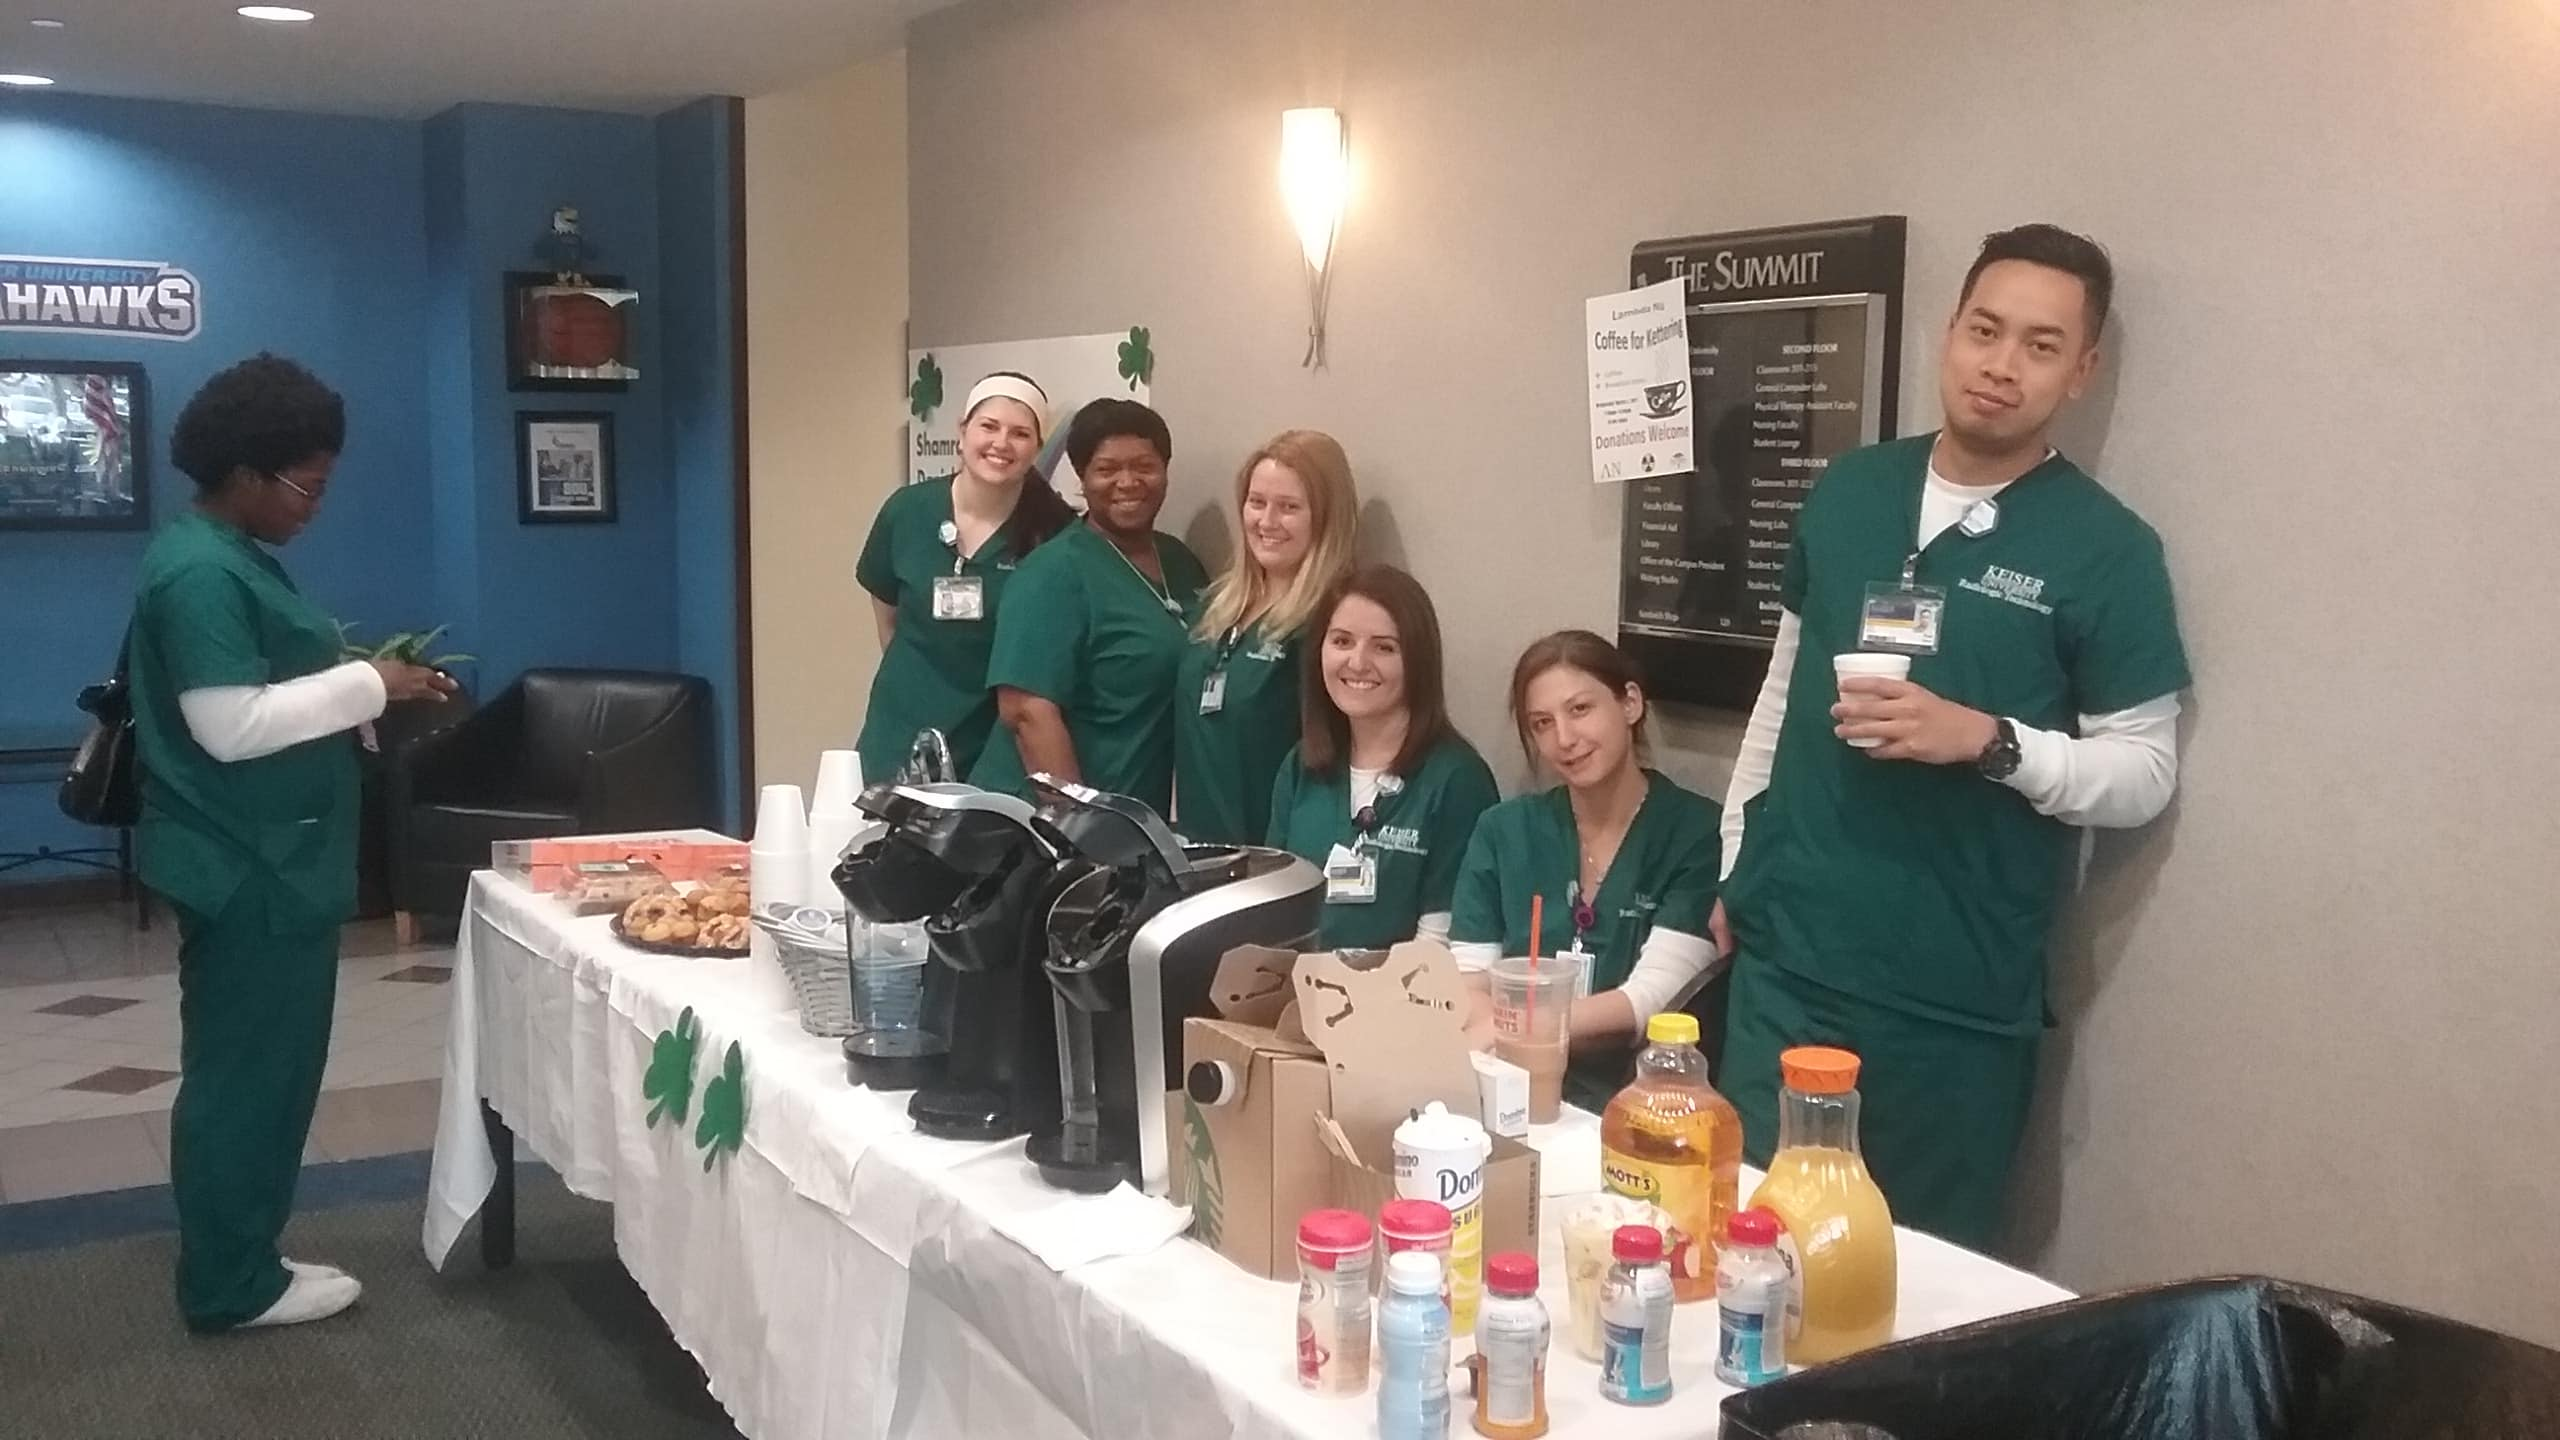 RT Students in Jacksonville Raise Money for Local Charity